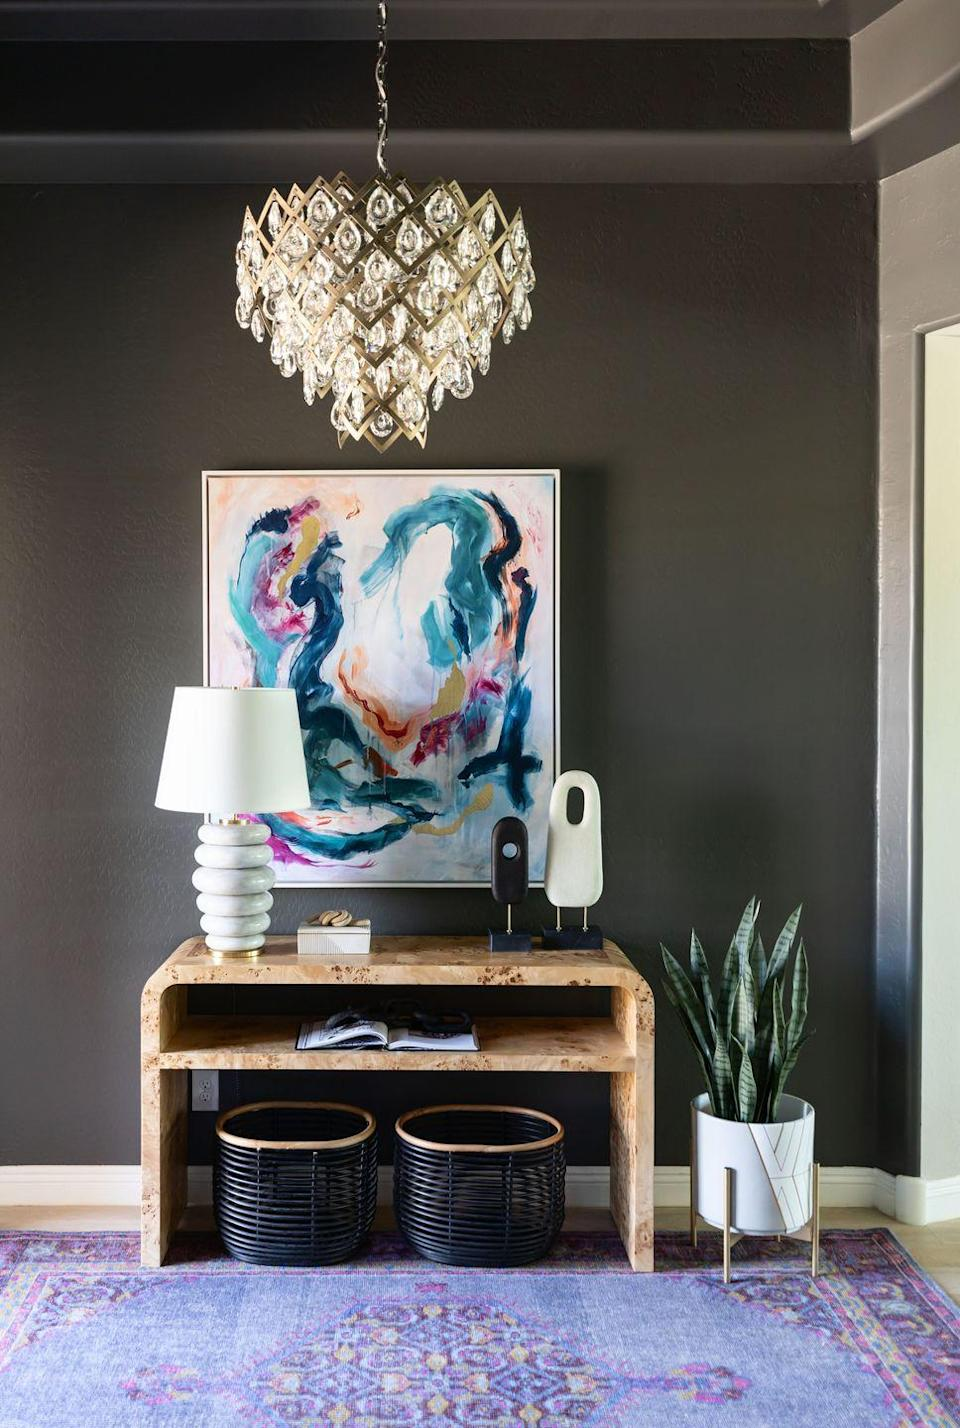 """<p>Sherwin-Williams' Forged Steel is a go-to choice for Lauren Lerner of <a href=""""https://www.livingwithlolo.com/"""" rel=""""nofollow noopener"""" target=""""_blank"""" data-ylk=""""slk:Living with Lolo"""" class=""""link rapid-noclick-resp"""">Living with Lolo</a>. """"I love that this color changes depending on the lighting and nearby hues,"""" she says. """"It is a warm gray with some brown tones and a great neutral to be used as a dramatic backdrop."""" </p><p><a class=""""link rapid-noclick-resp"""" href=""""https://www.sherwin-williams.com/homeowners/color/find-and-explore-colors/paint-colors-by-family/SW9565-forged-steel"""" rel=""""nofollow noopener"""" target=""""_blank"""" data-ylk=""""slk:SHOP NOW"""">SHOP NOW</a></p>"""